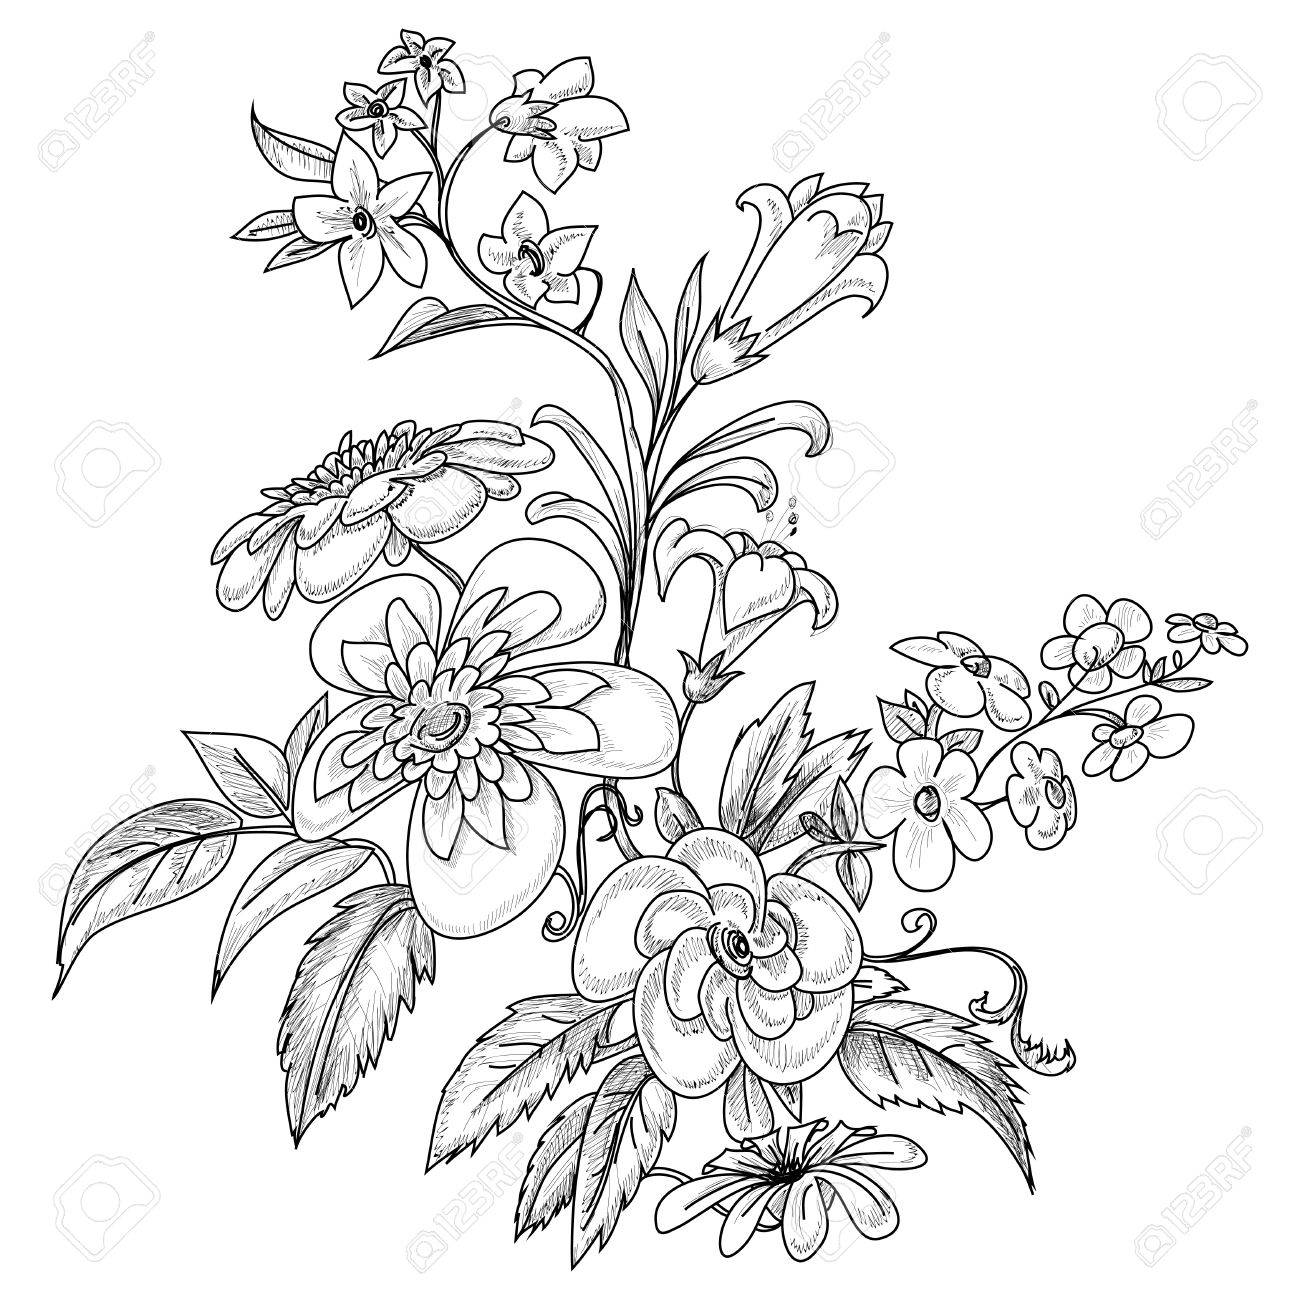 Graphic ornate flowers Stock Vector - 10394002